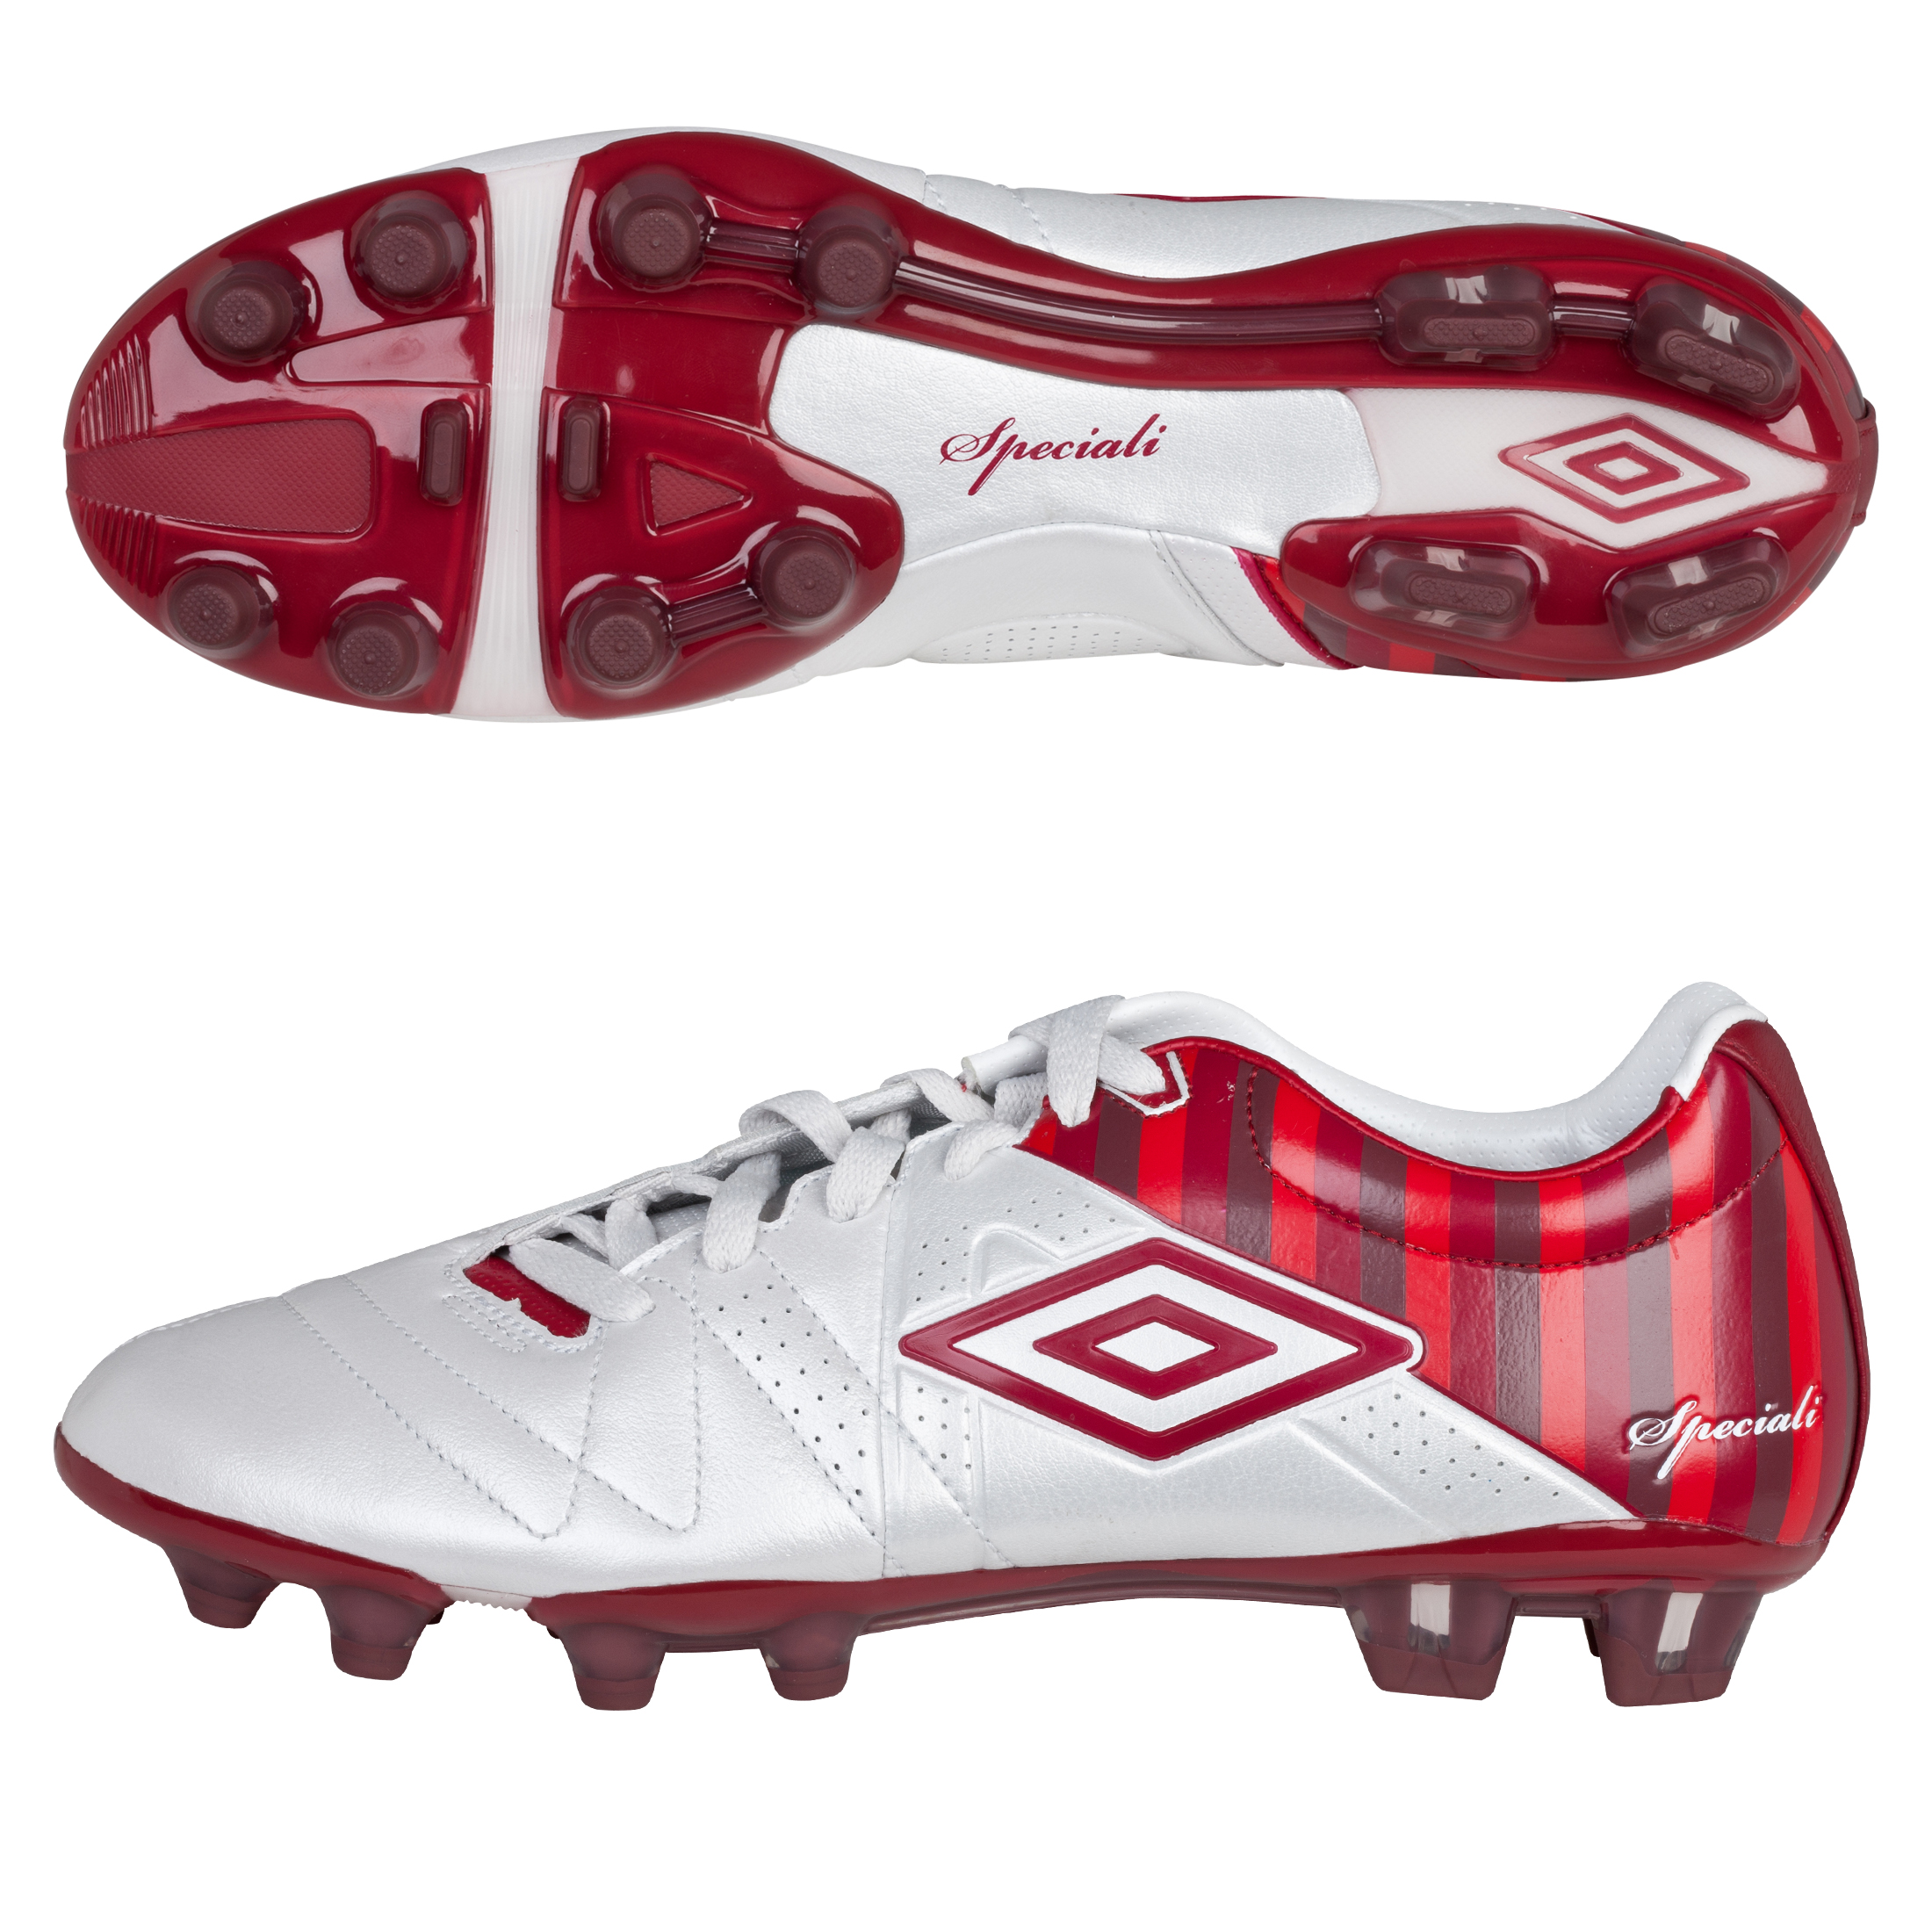 Umbro Speciali 3 Pro 2012 Hard Ground Boots